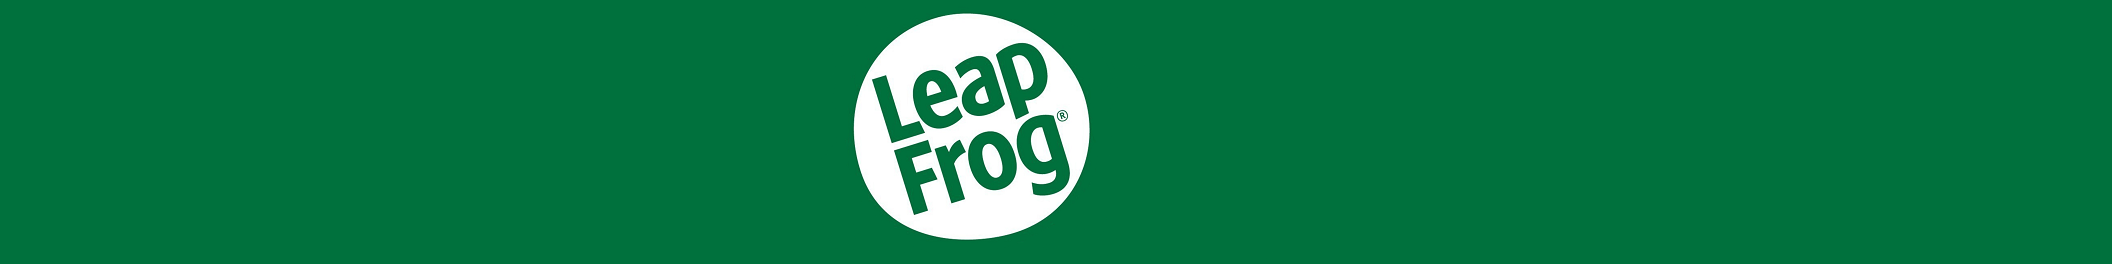 LeapFrog category 2112x264